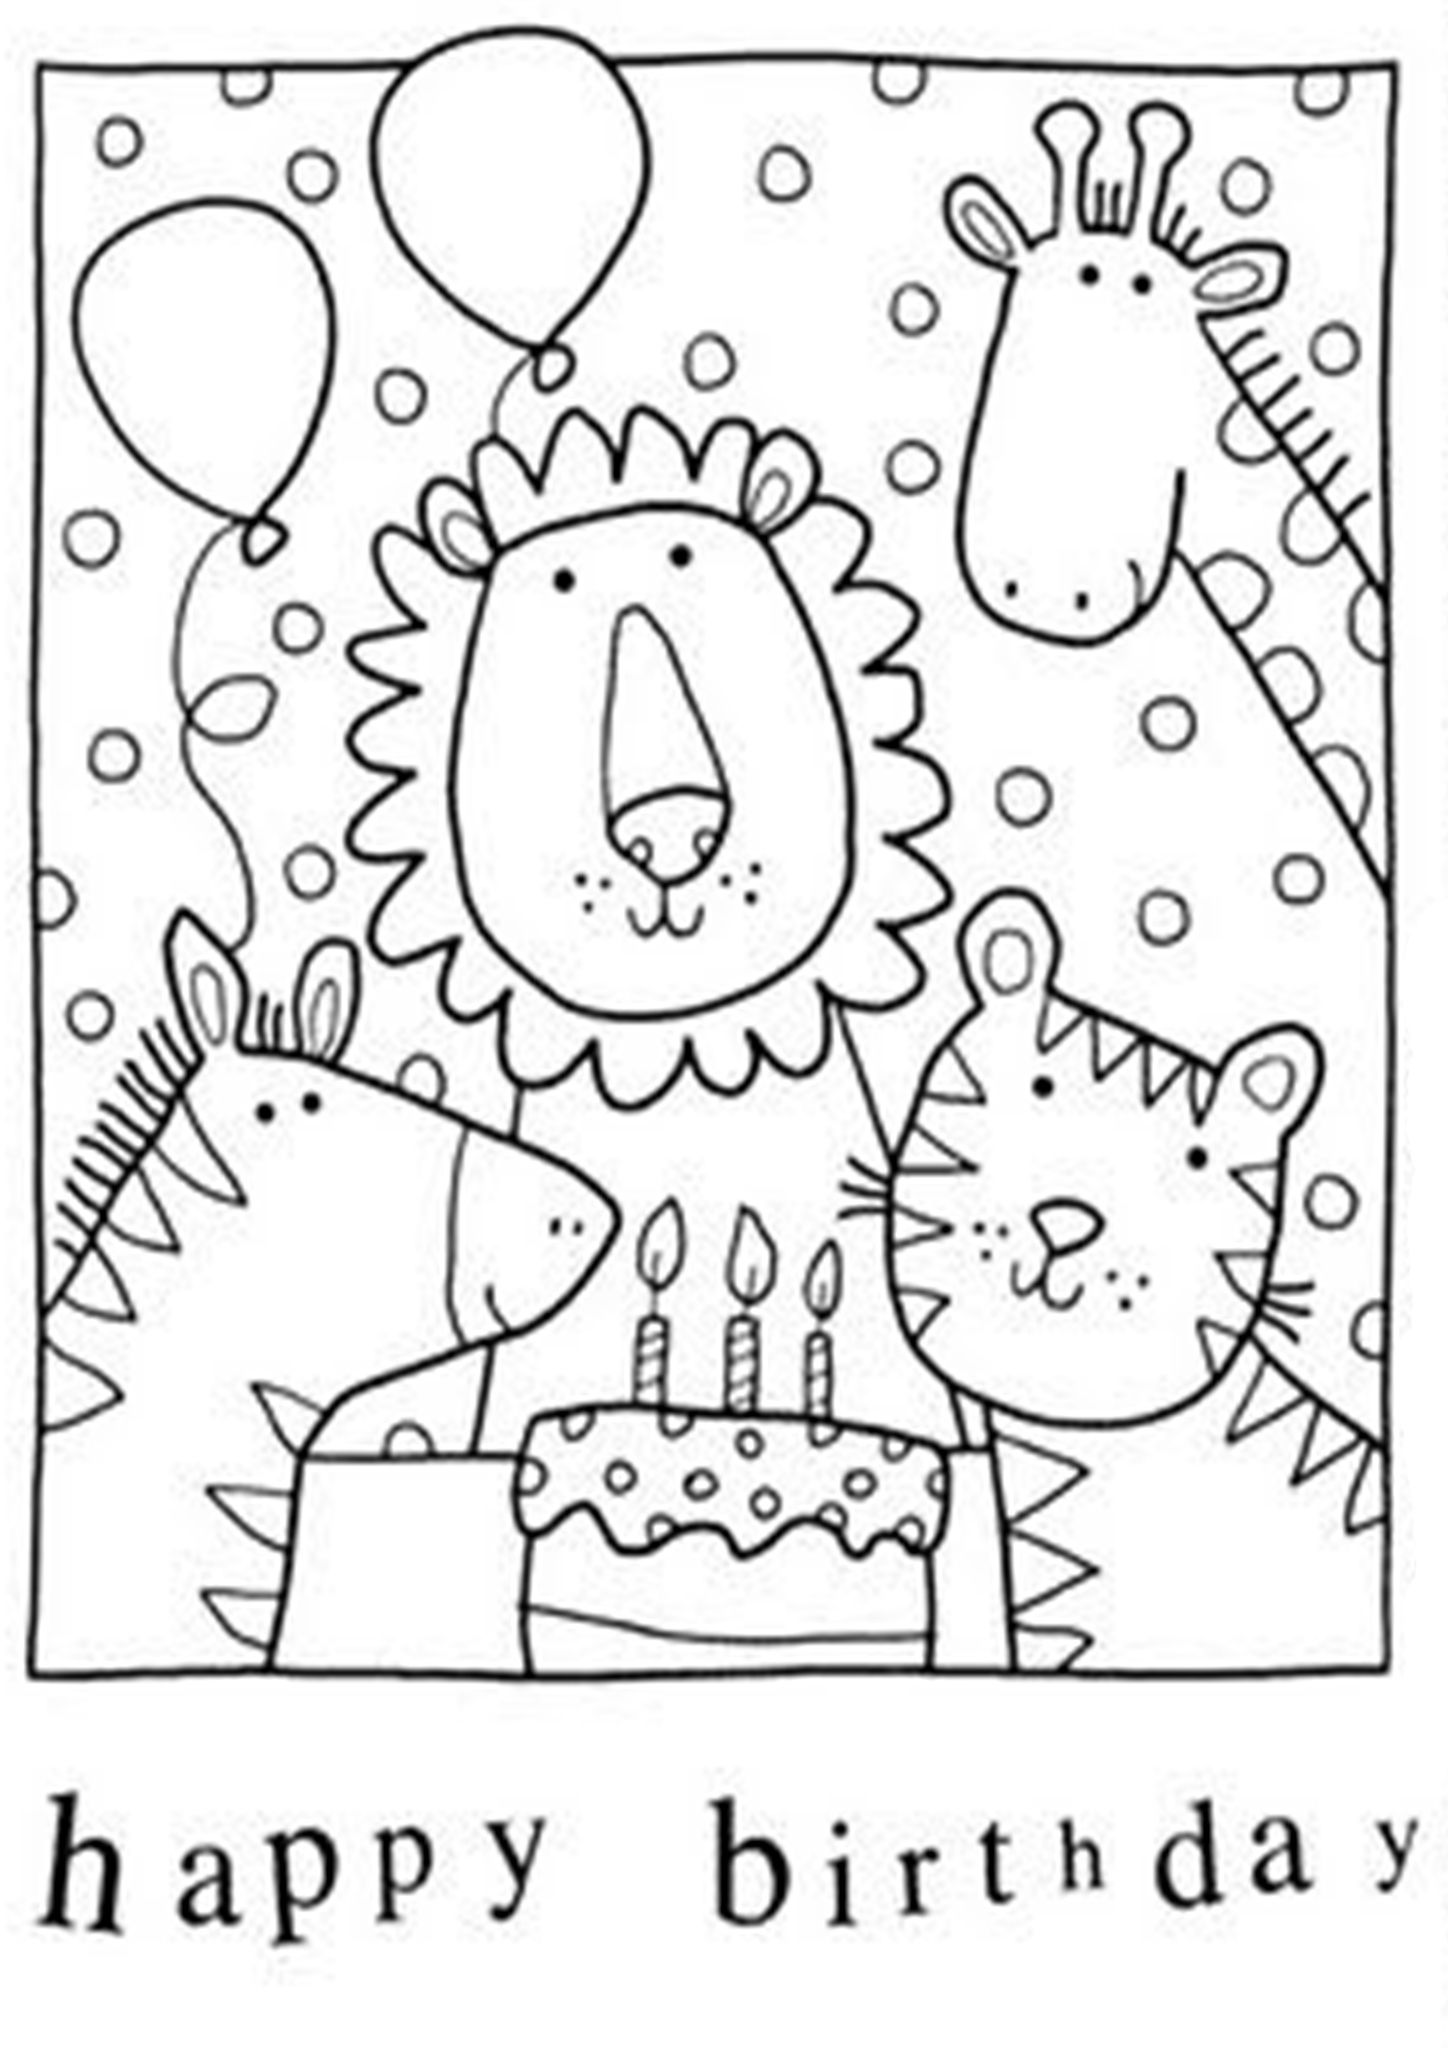 Free & Easy To Print Happy Birthday Coloring Pages  Birthday